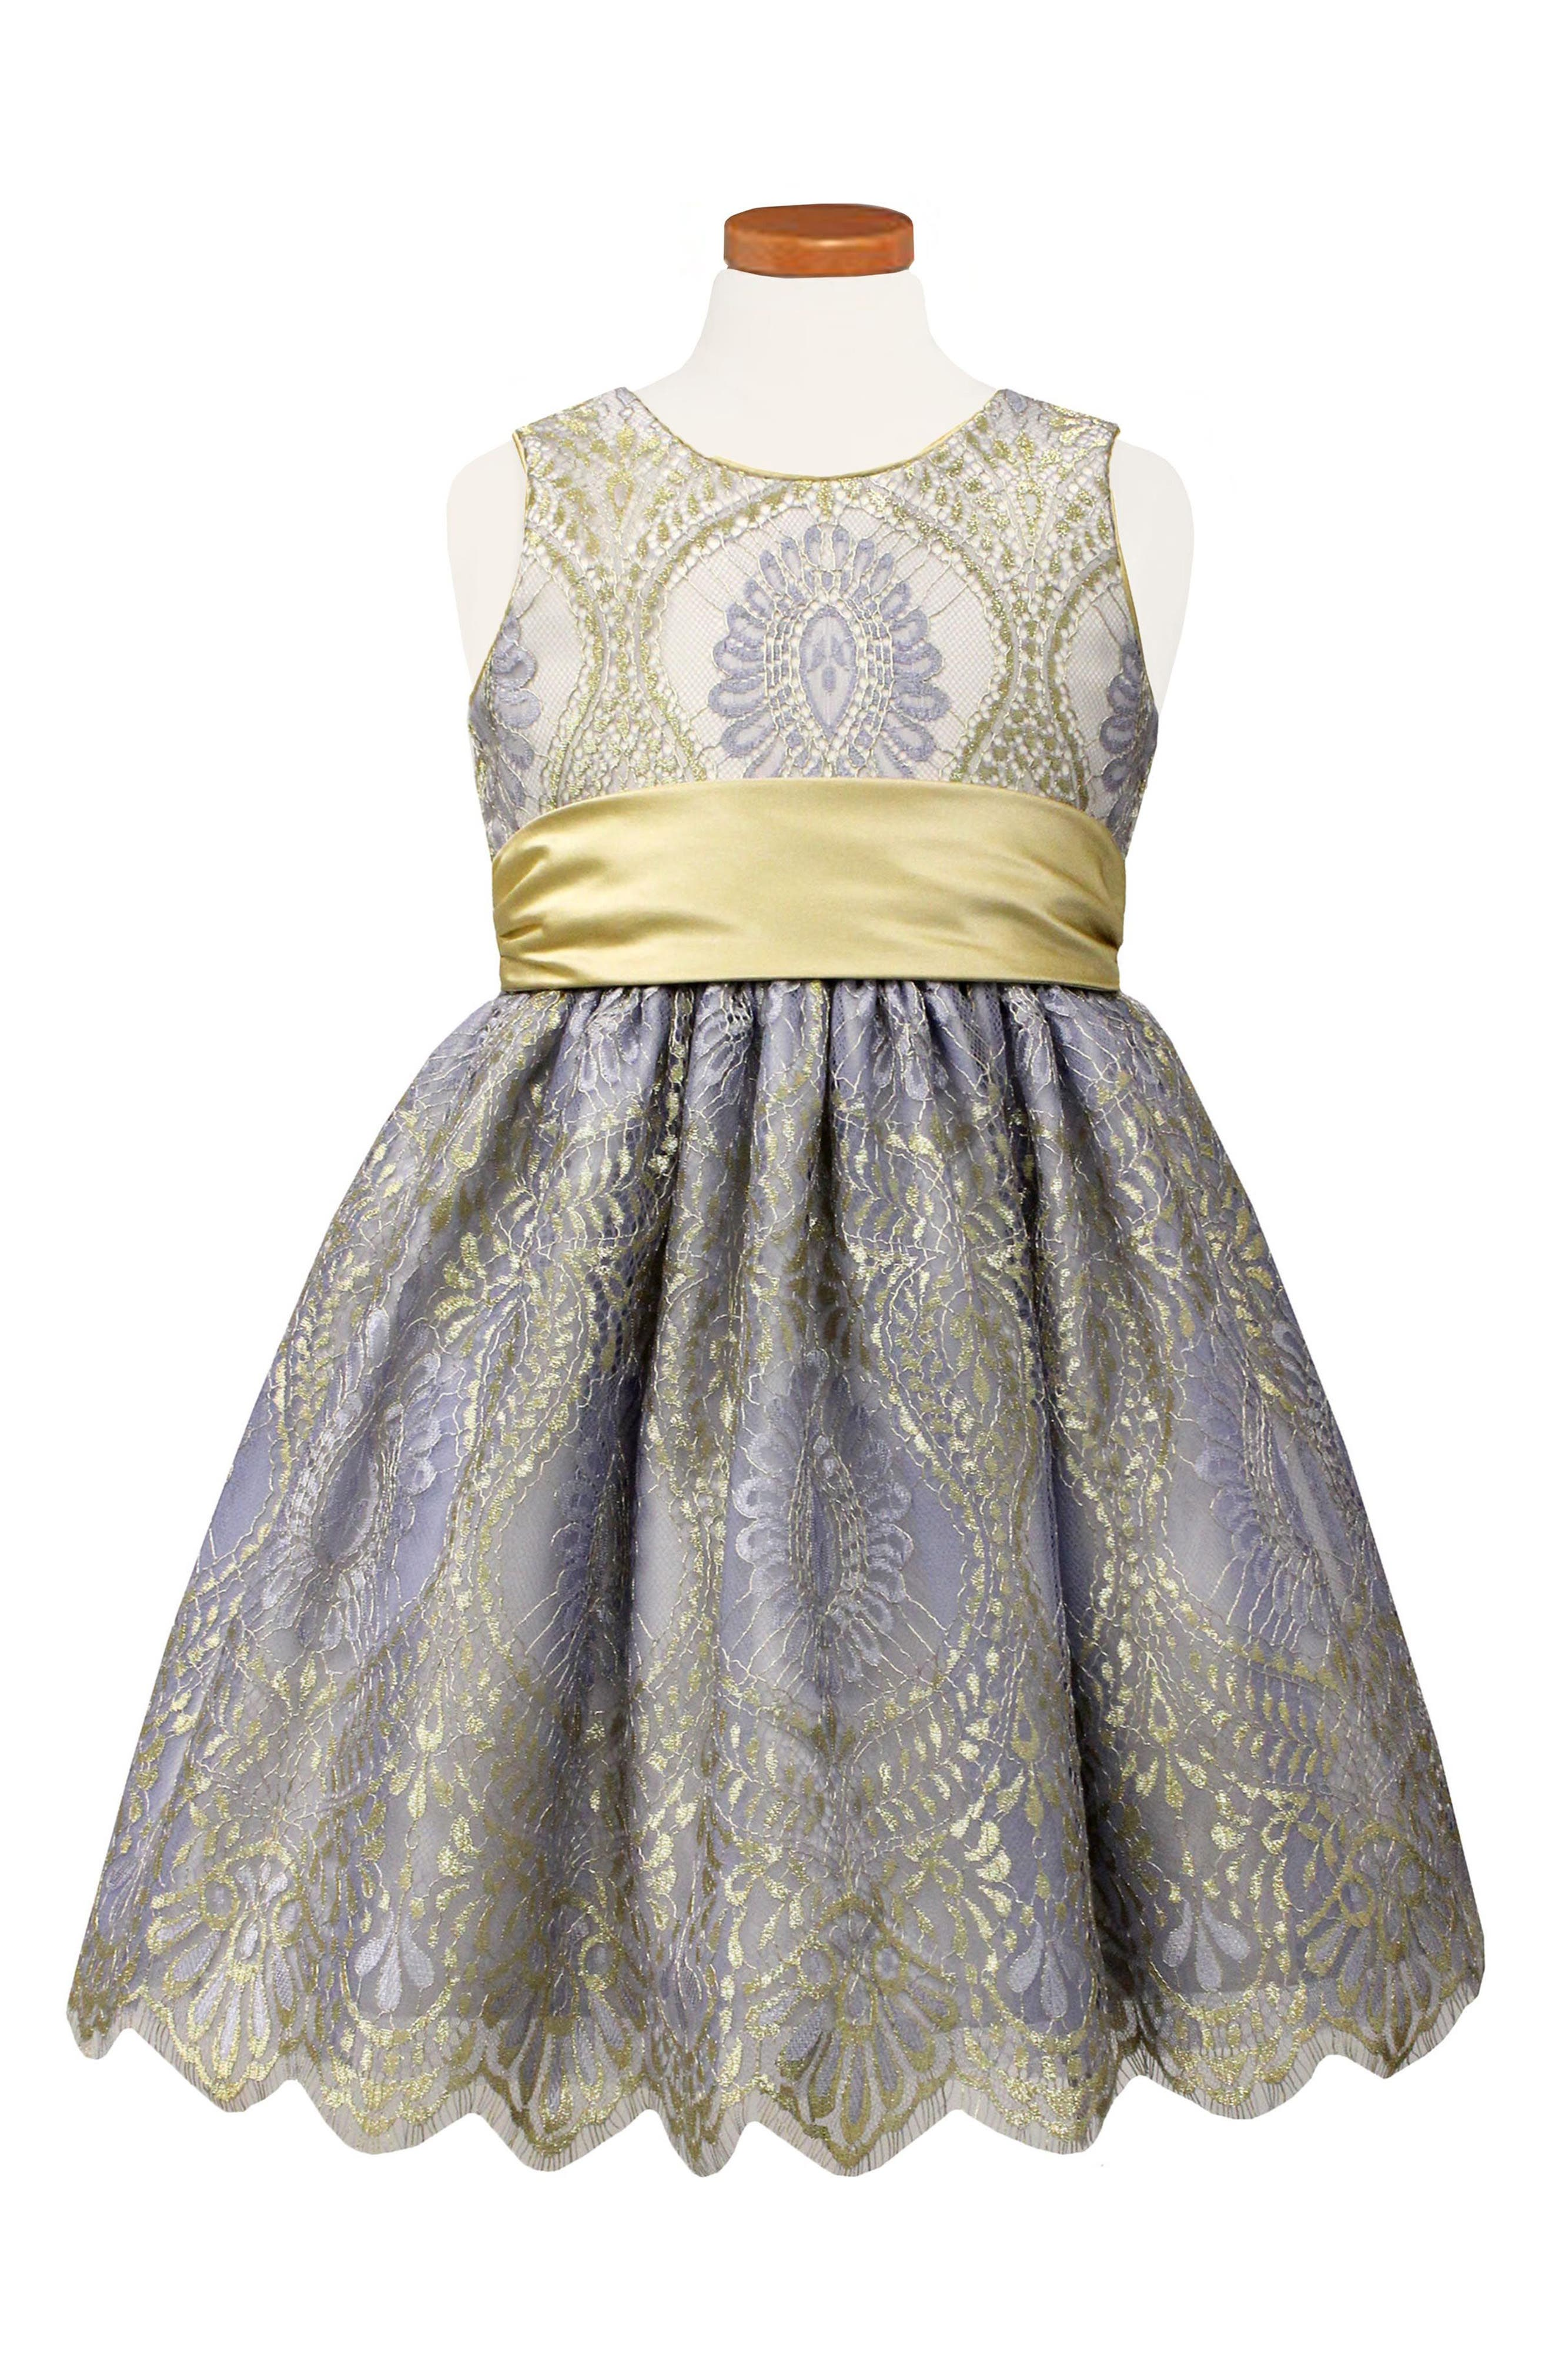 Main Image - Sorbet Lace Party Dress (Toddler Girls & Little Girls)